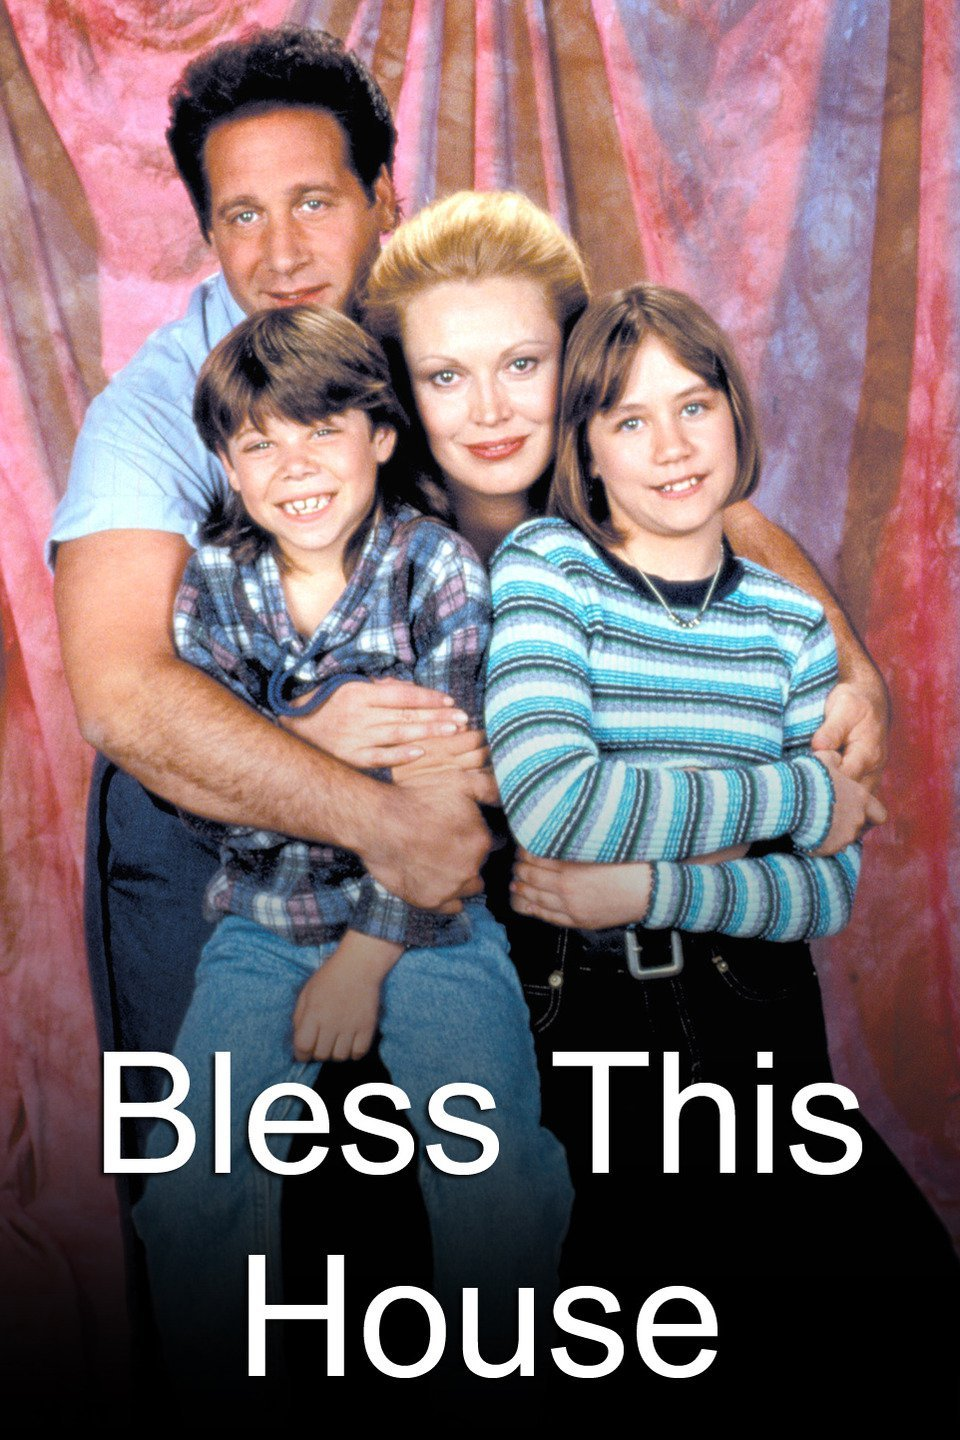 Bless This House (1995) - Complete Series - Digital Download